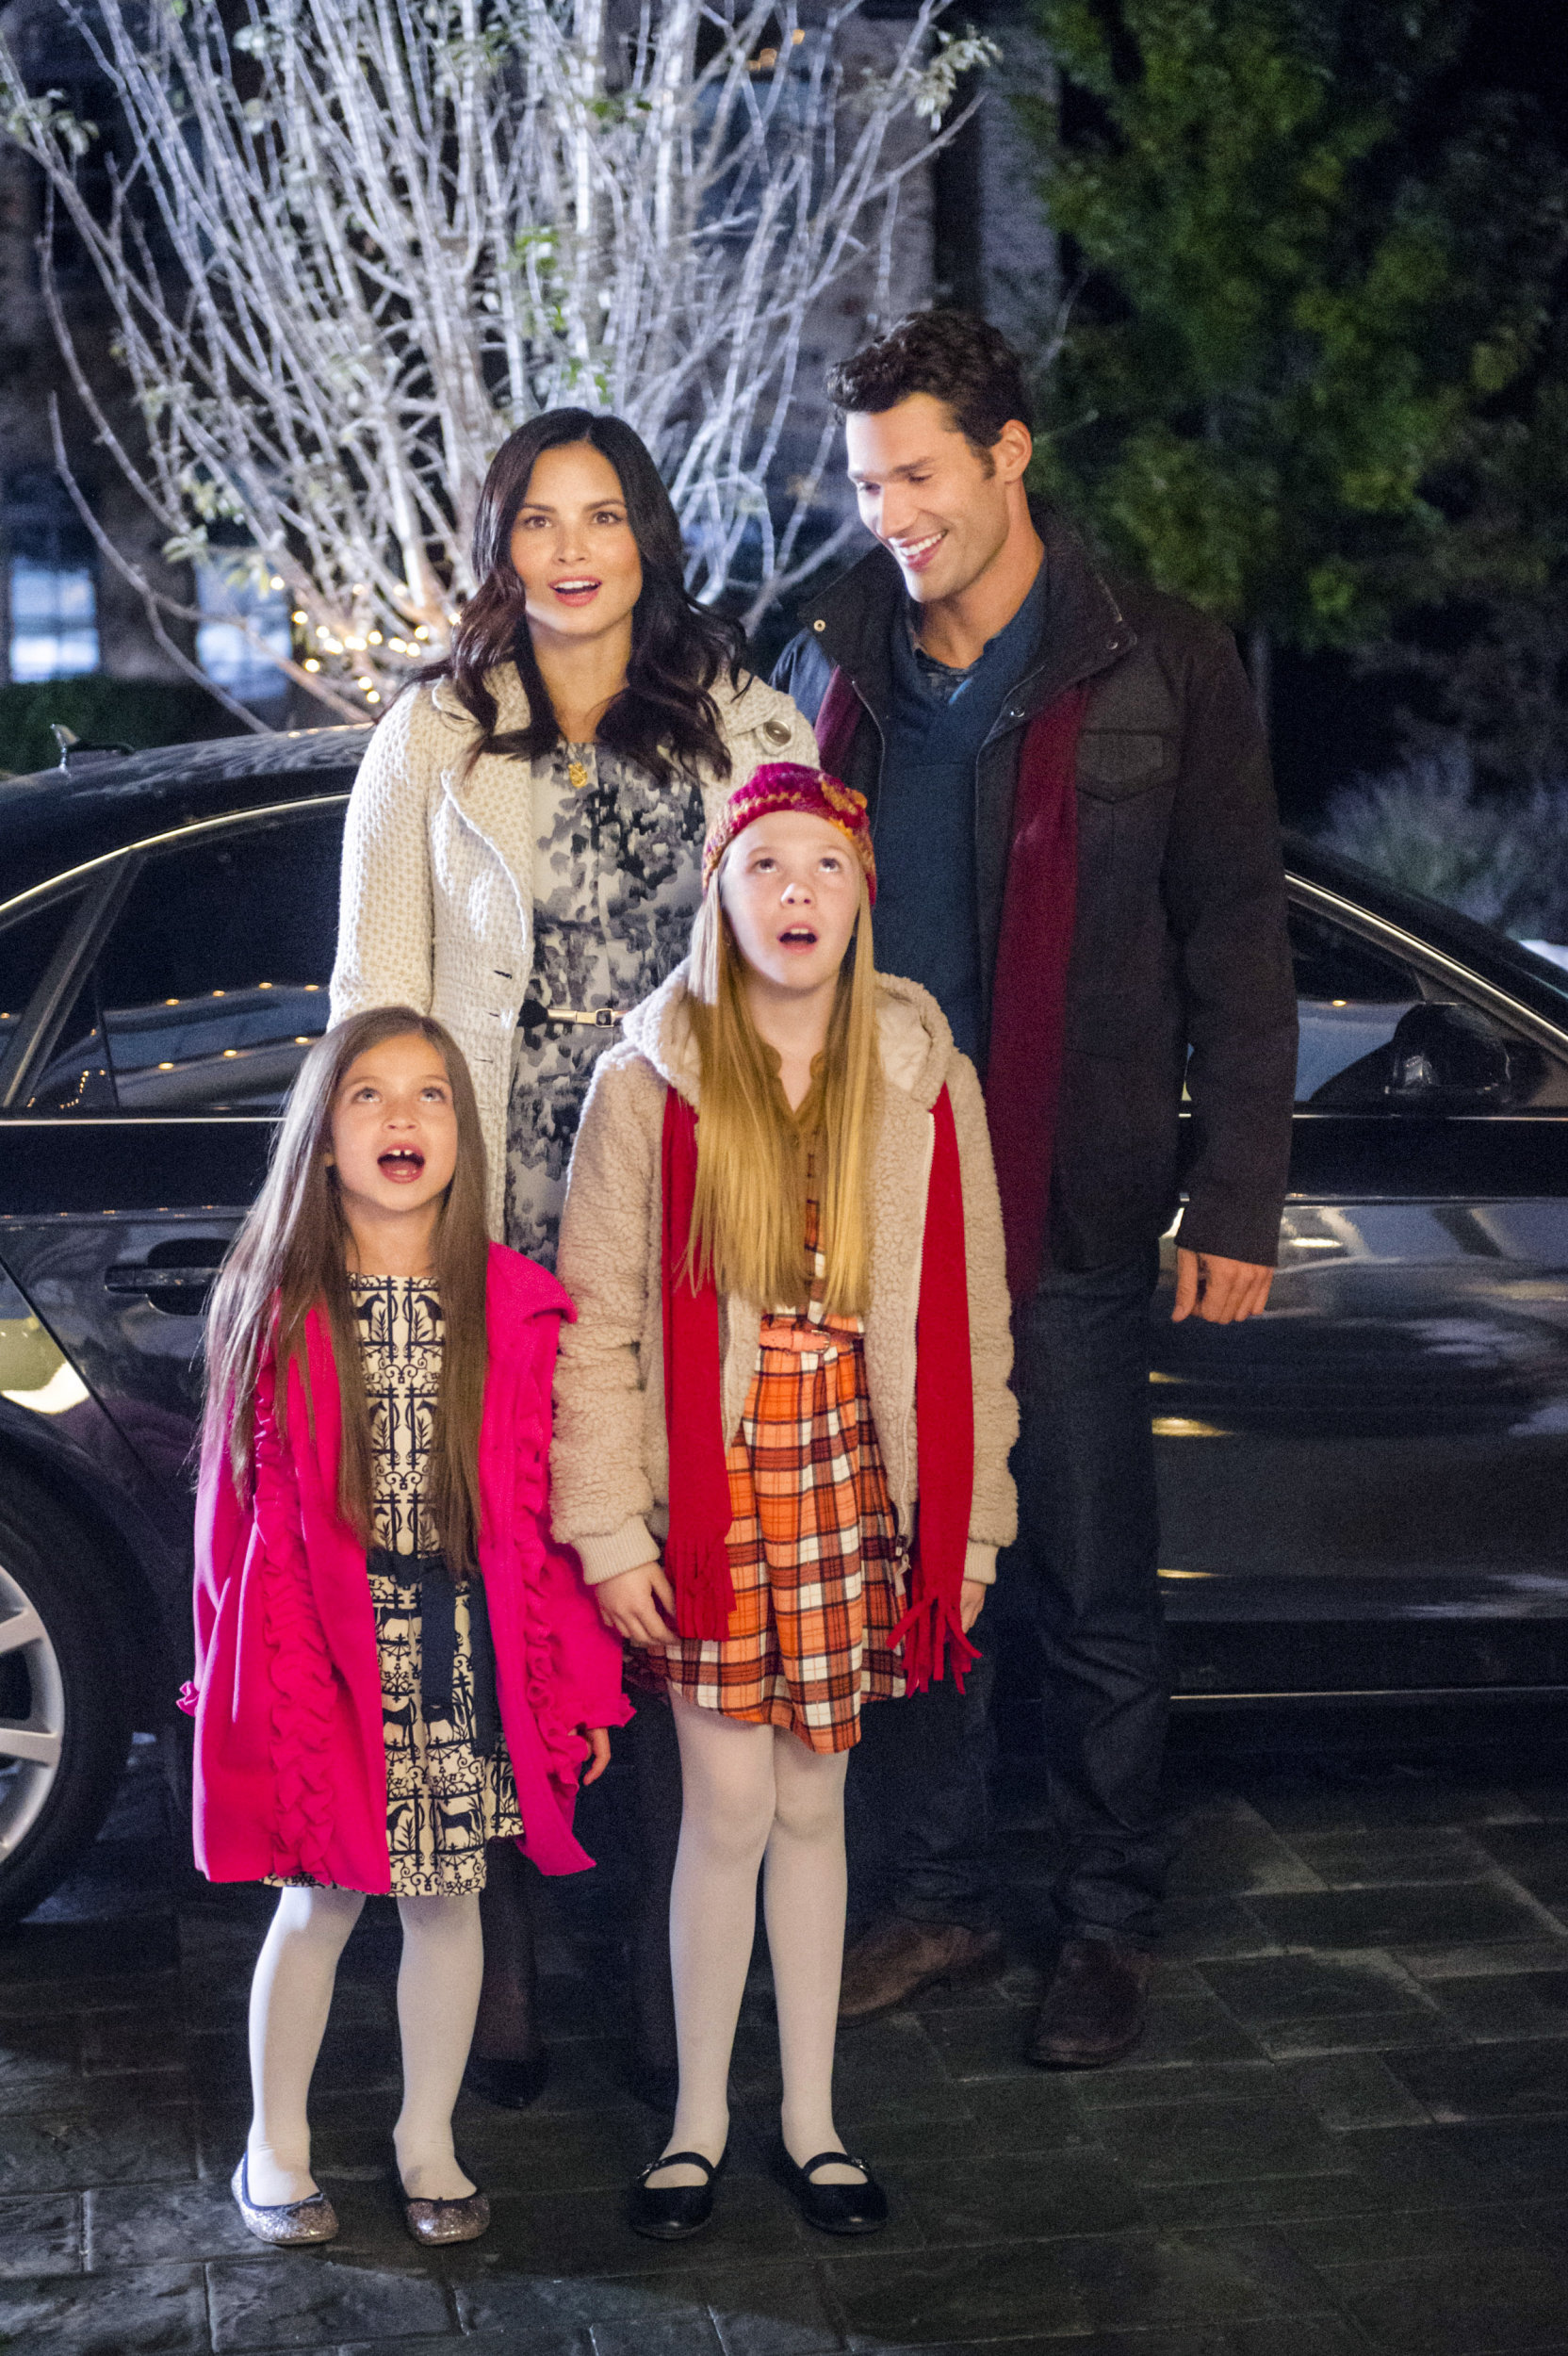 12 Gifts Of Christmas Cast.About The Movie 12 Gifts Of Christmas Hallmark Channel